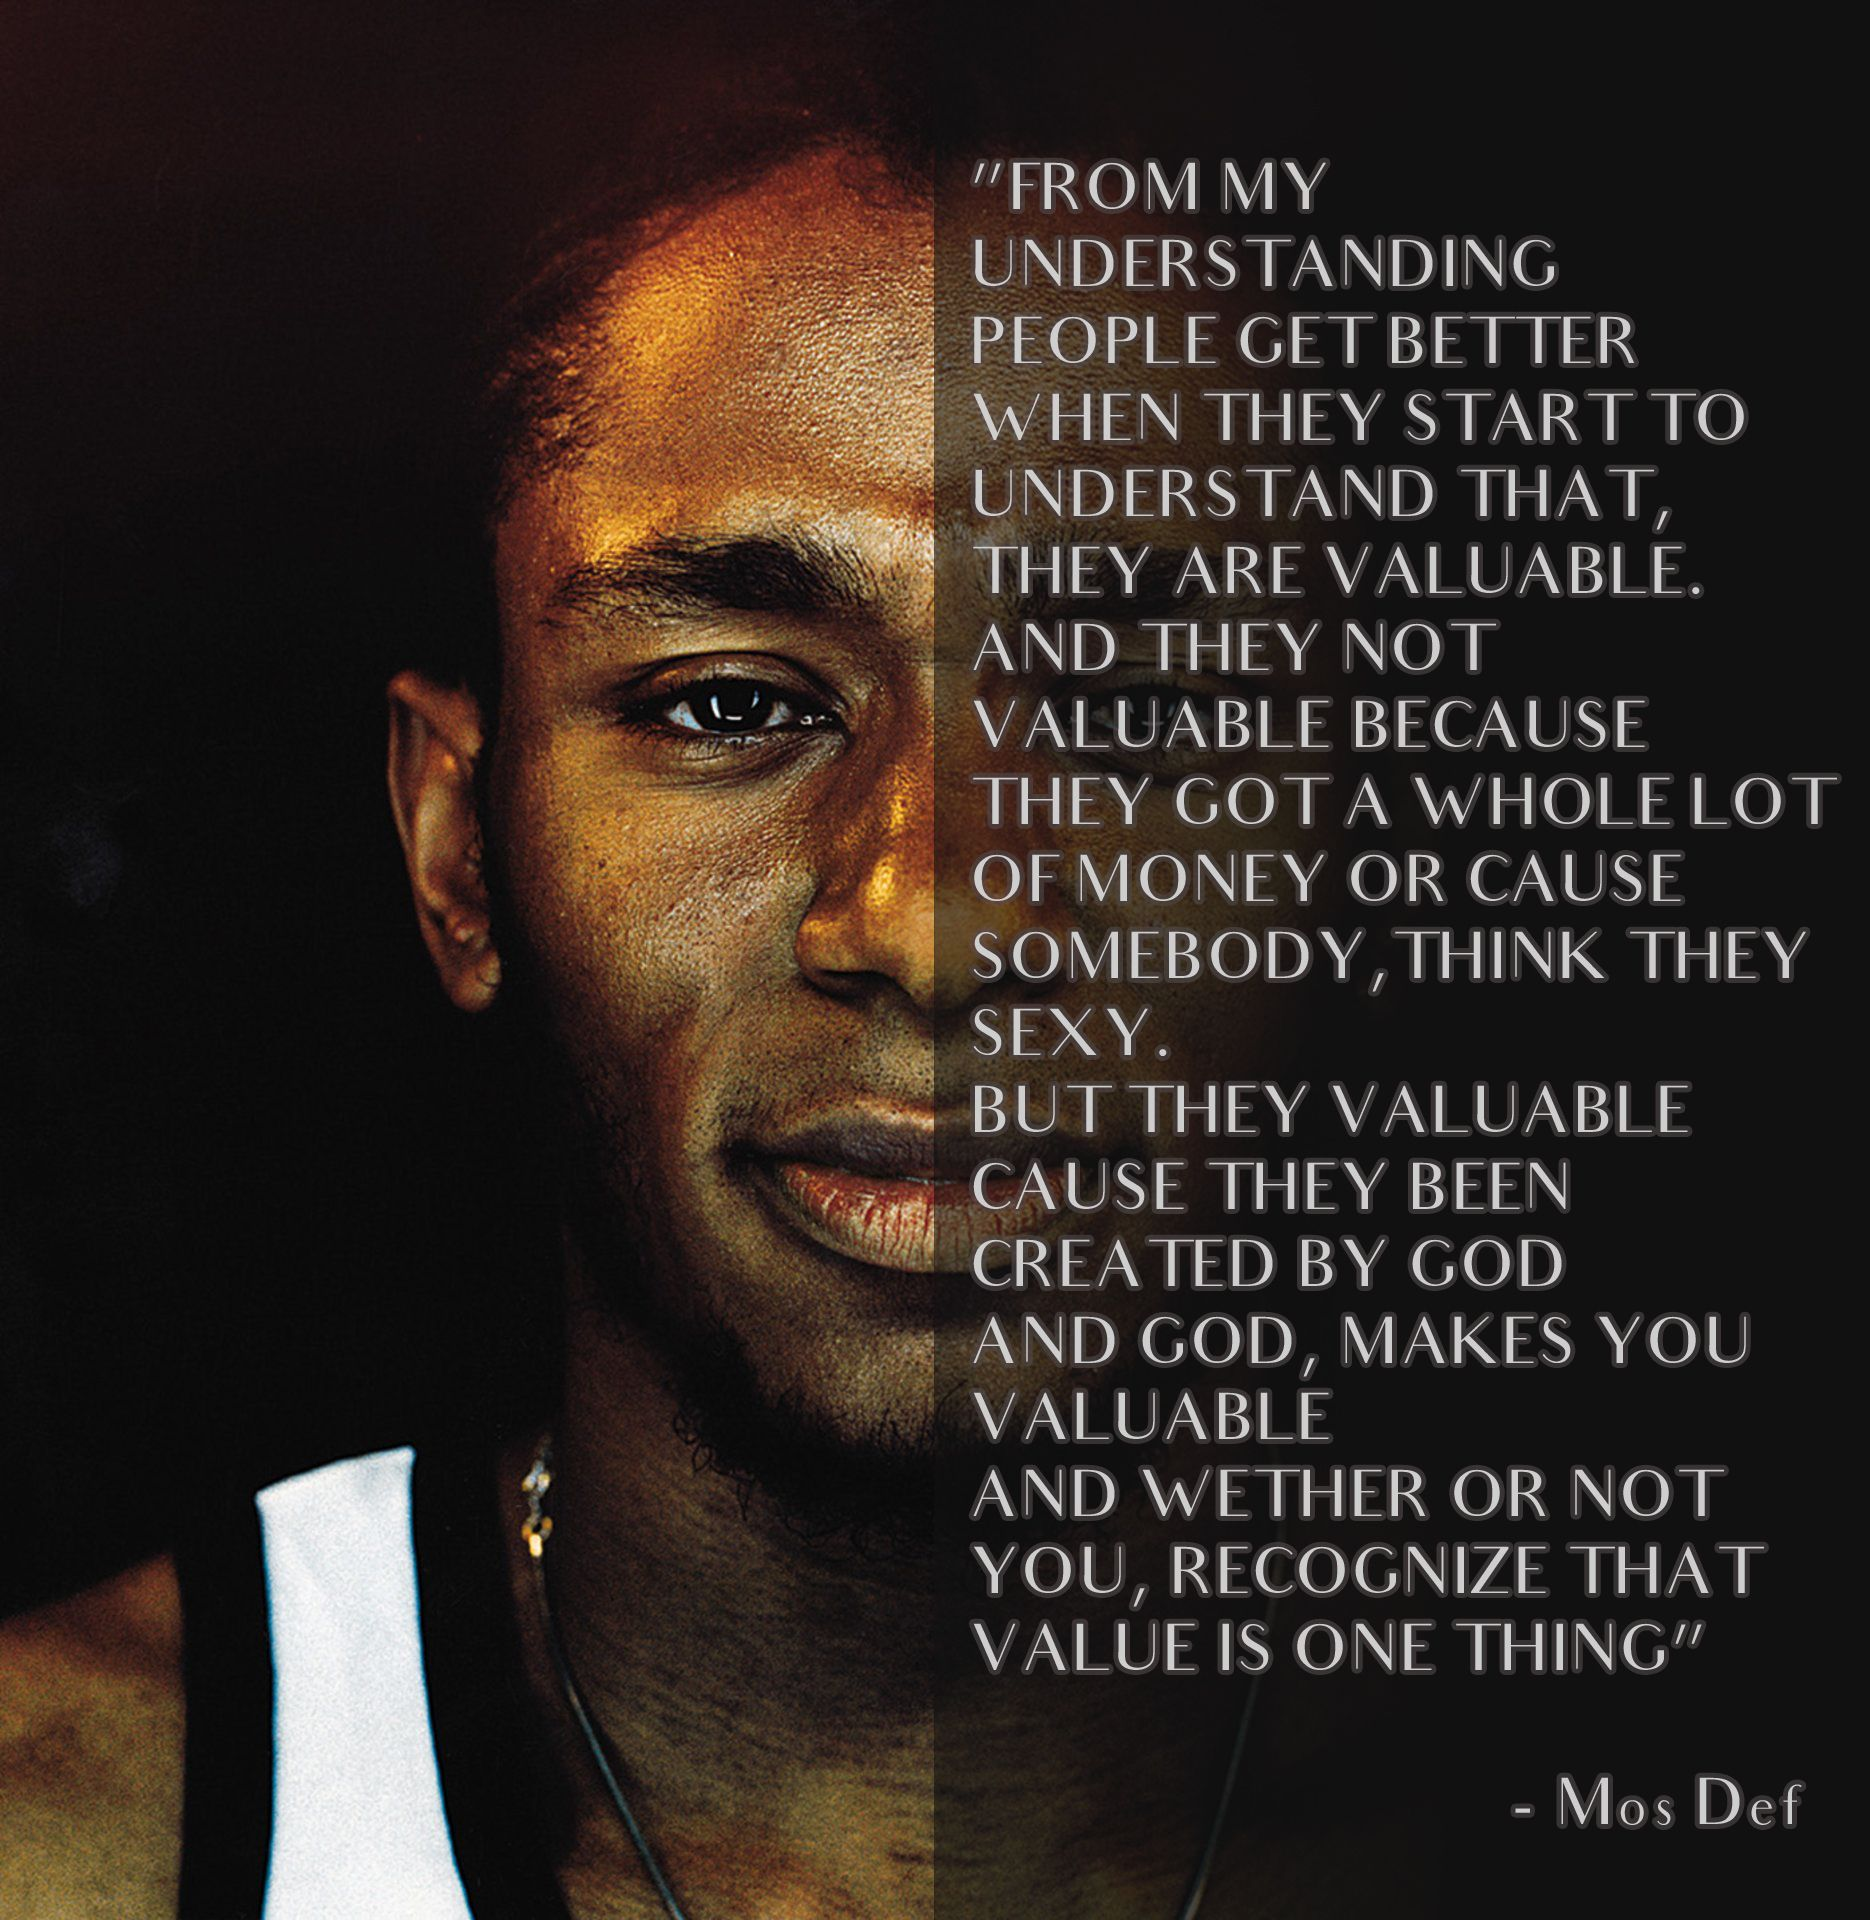 Mos Def about Value of Life Song Fear Not of Man Rapper